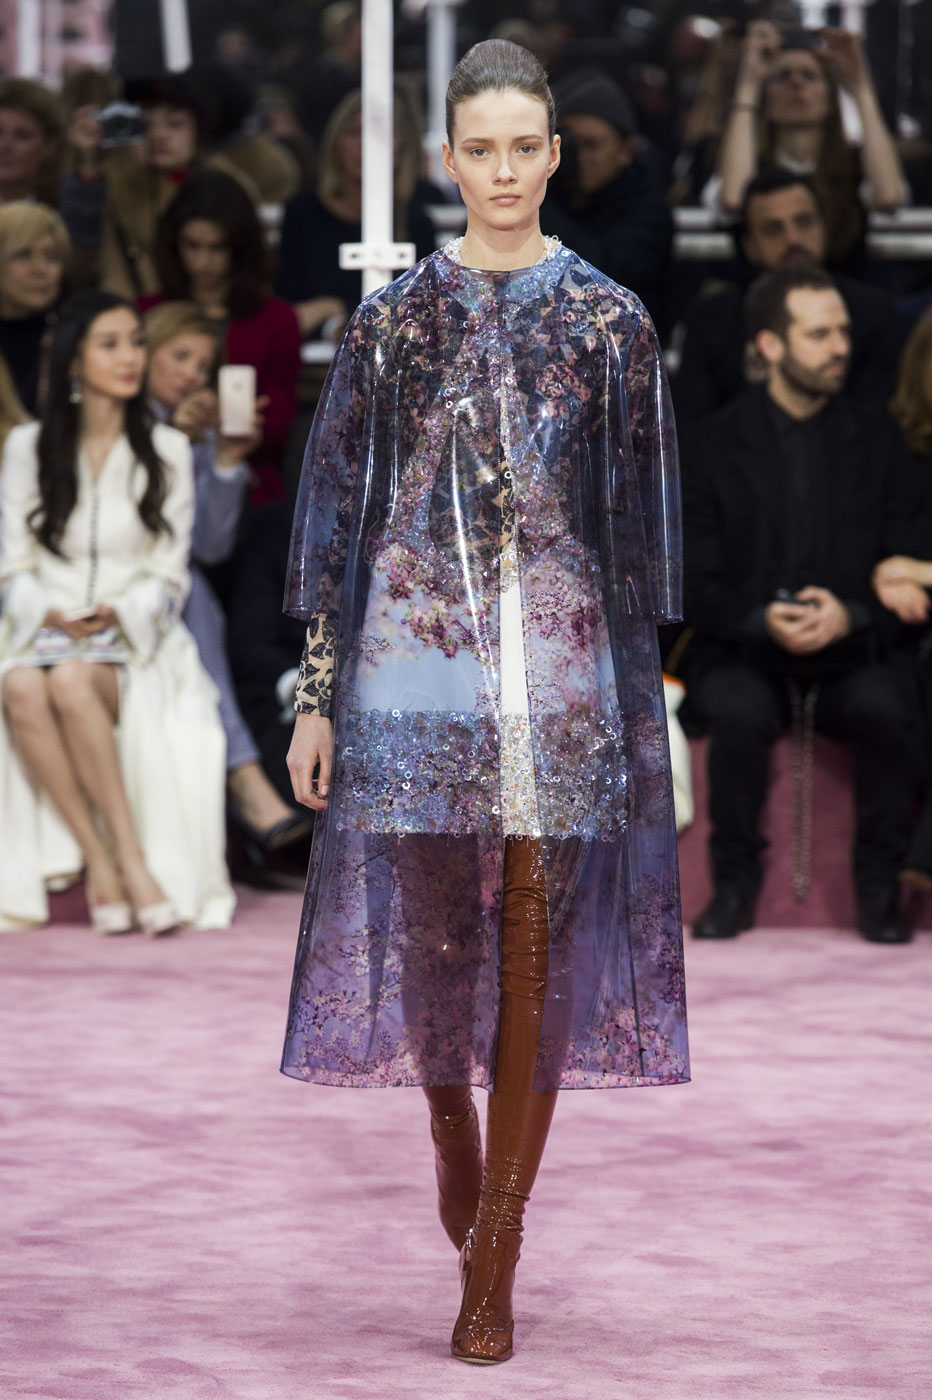 Christian-Dior-fashion-runway-show-haute-couture-paris-spring-summer-2015-the-impression-047